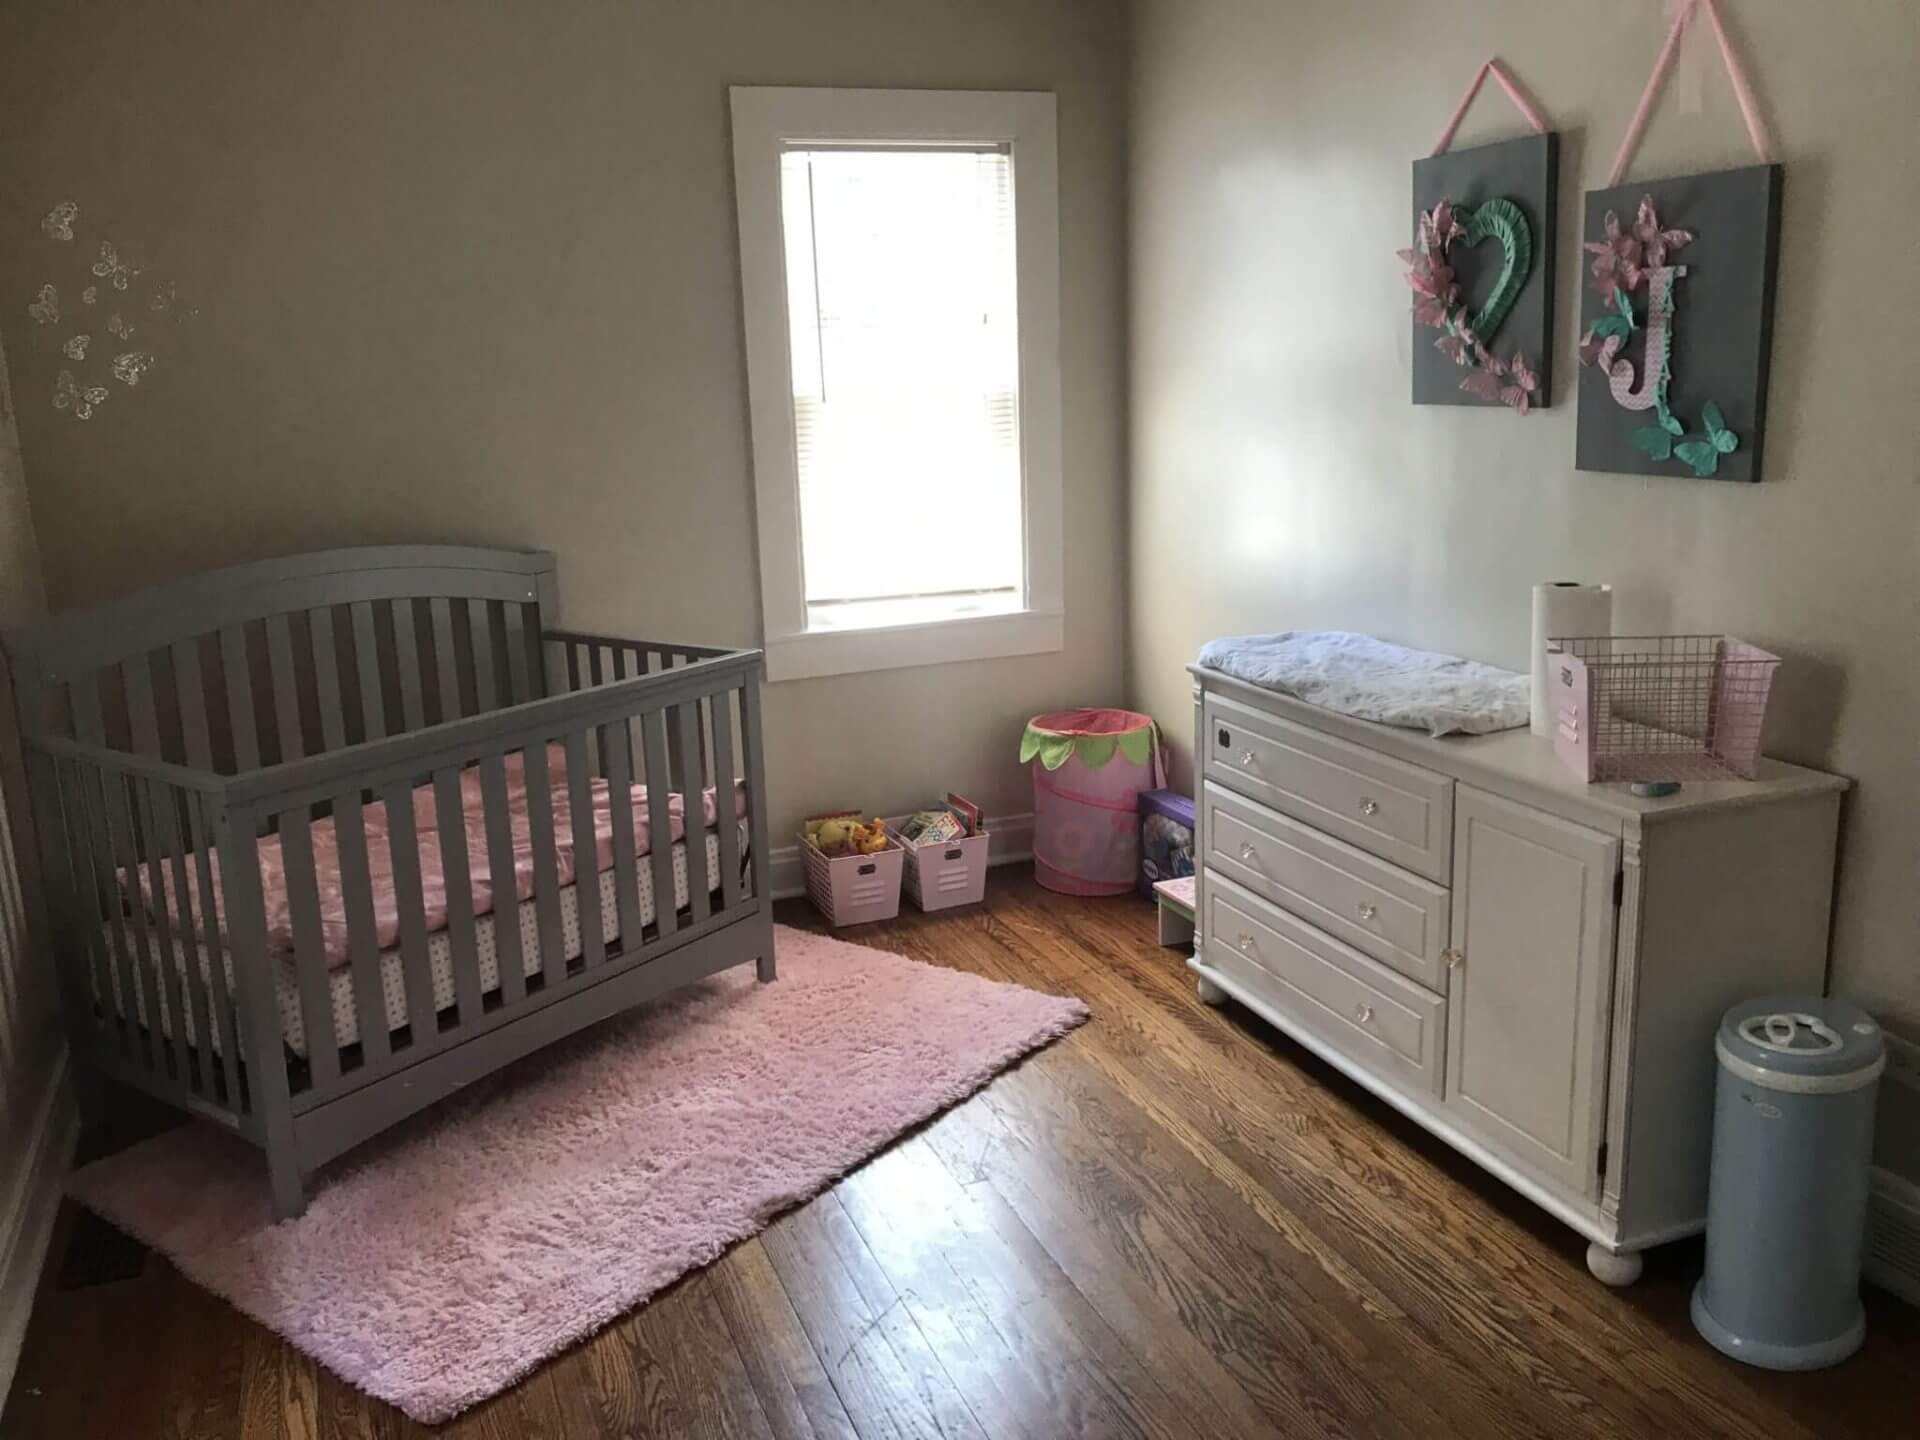 Nursery set up in new home